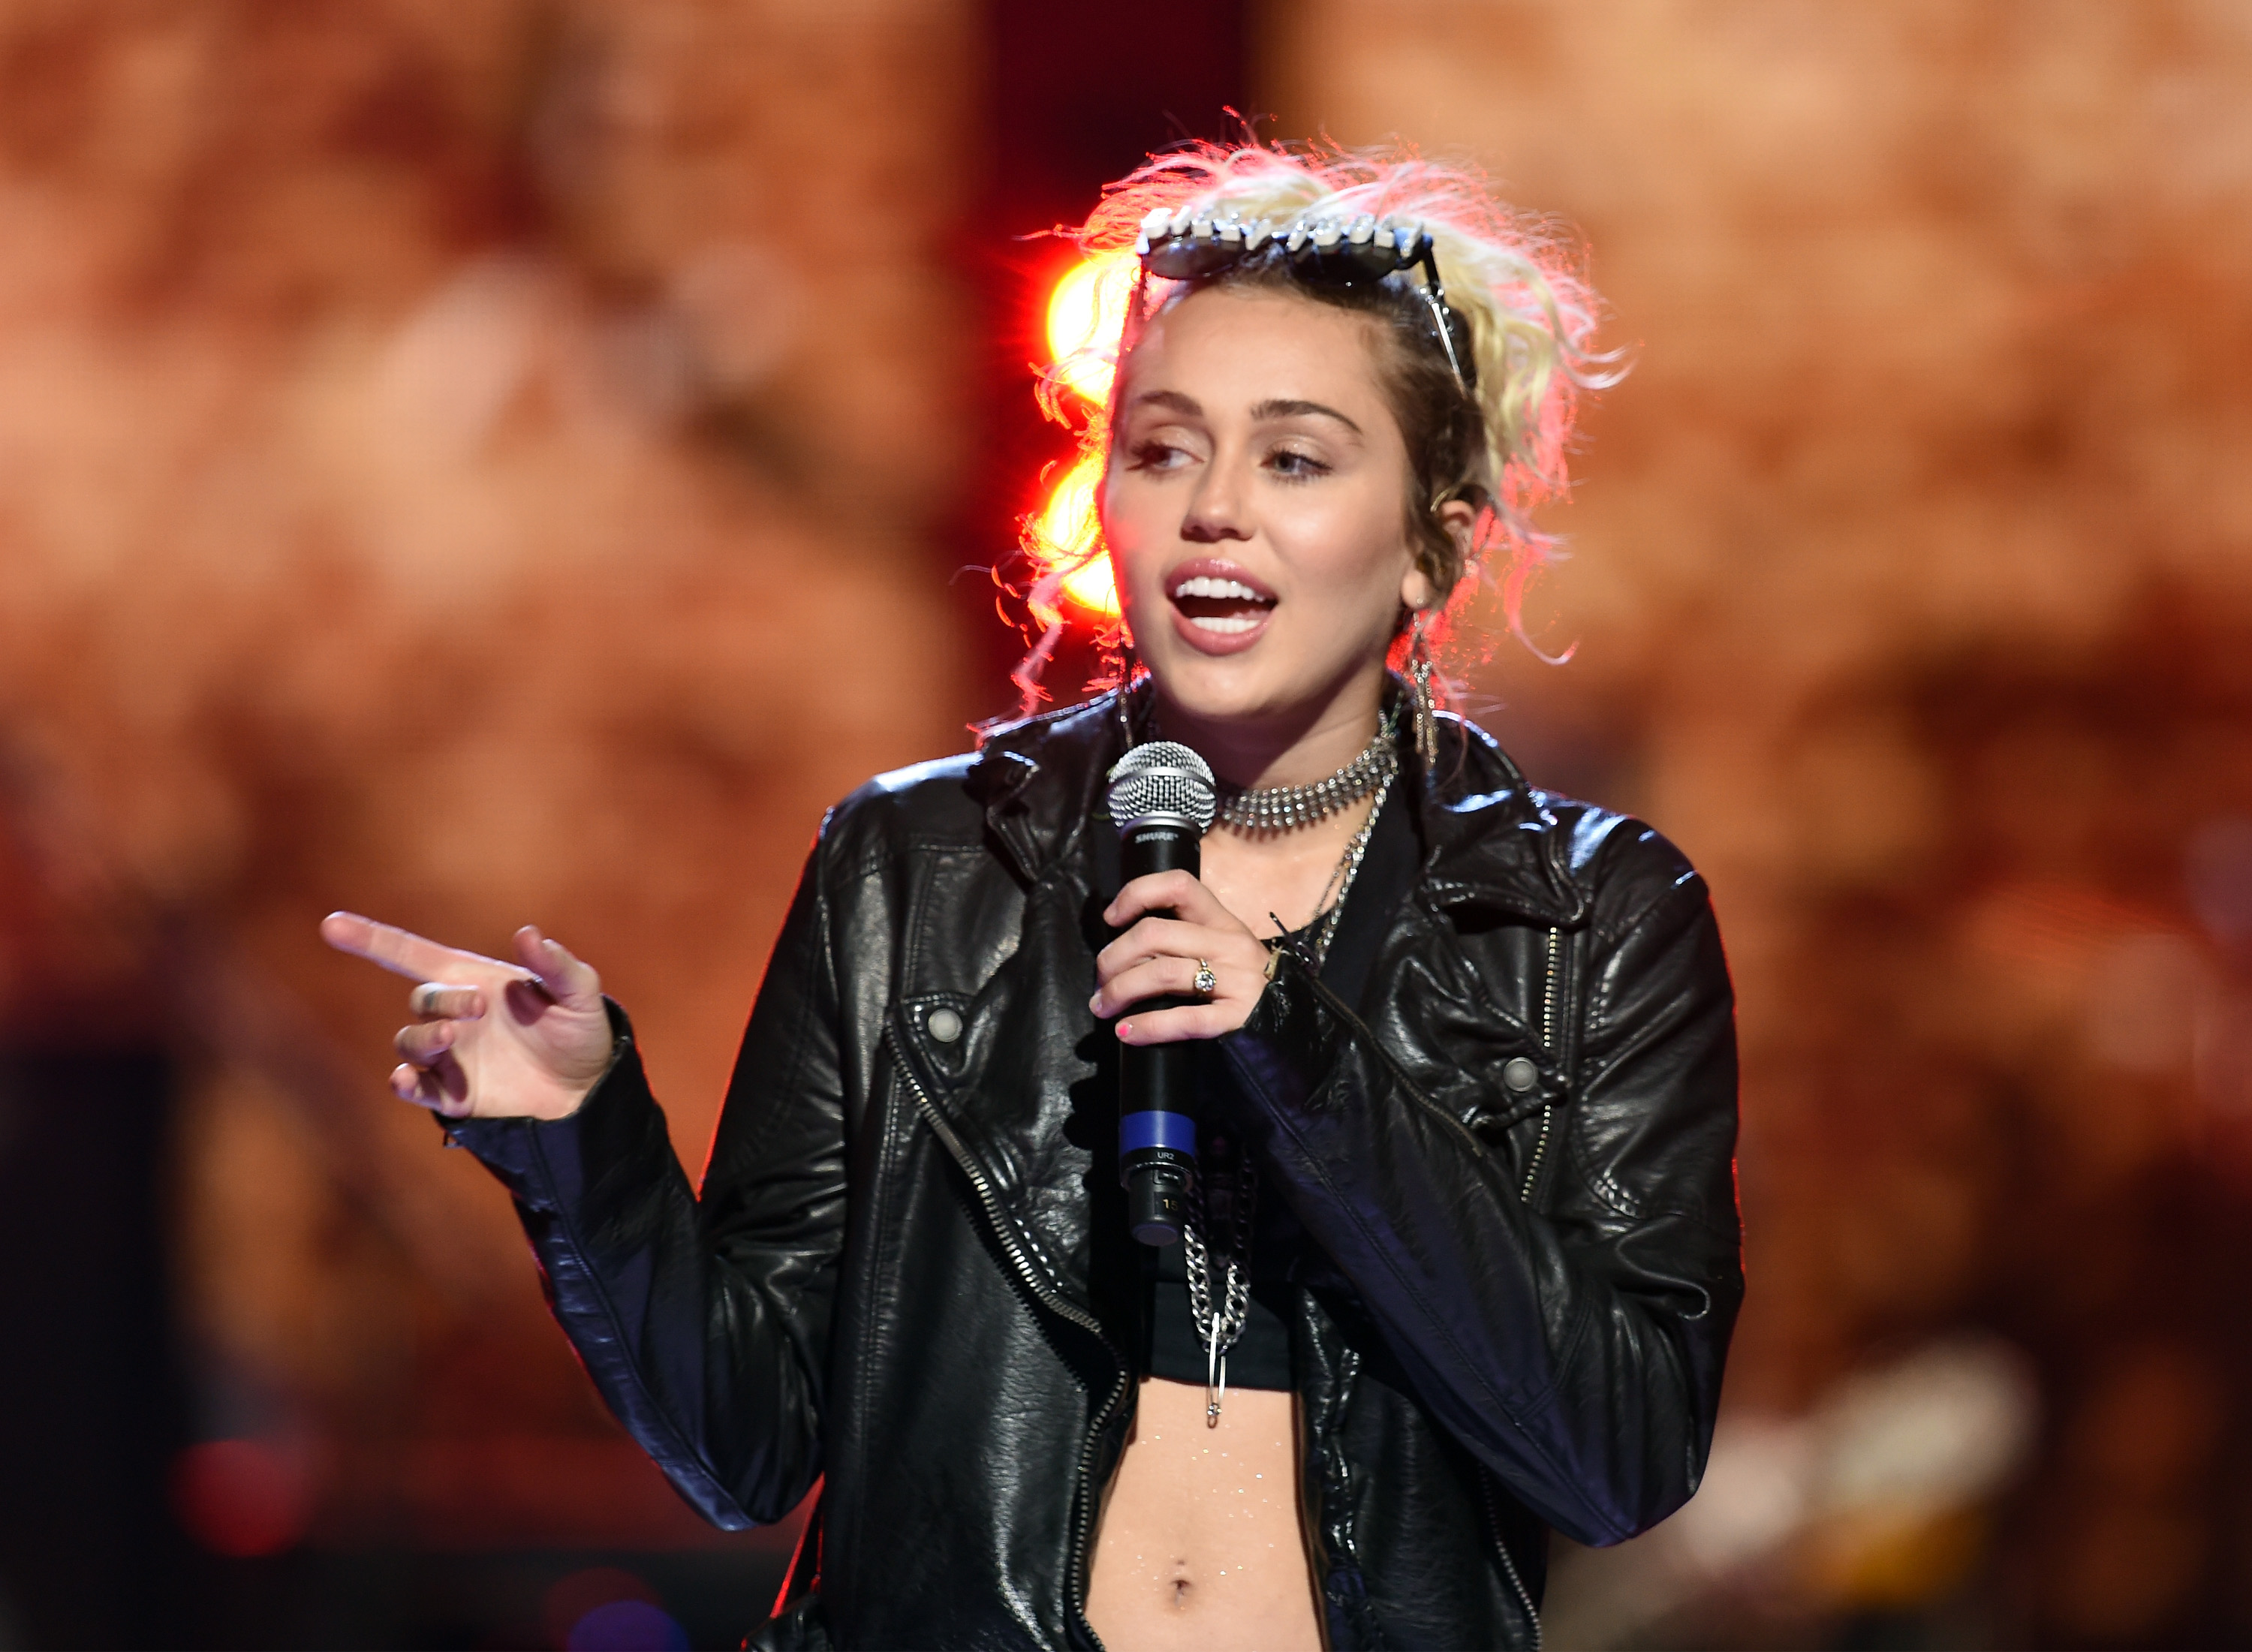 Miley Cyrus performs onstage at the 2016 iHeartRadio Music Festival at T-Mobile Arena on September 23, 2016 in Las Vegas, Nevada.